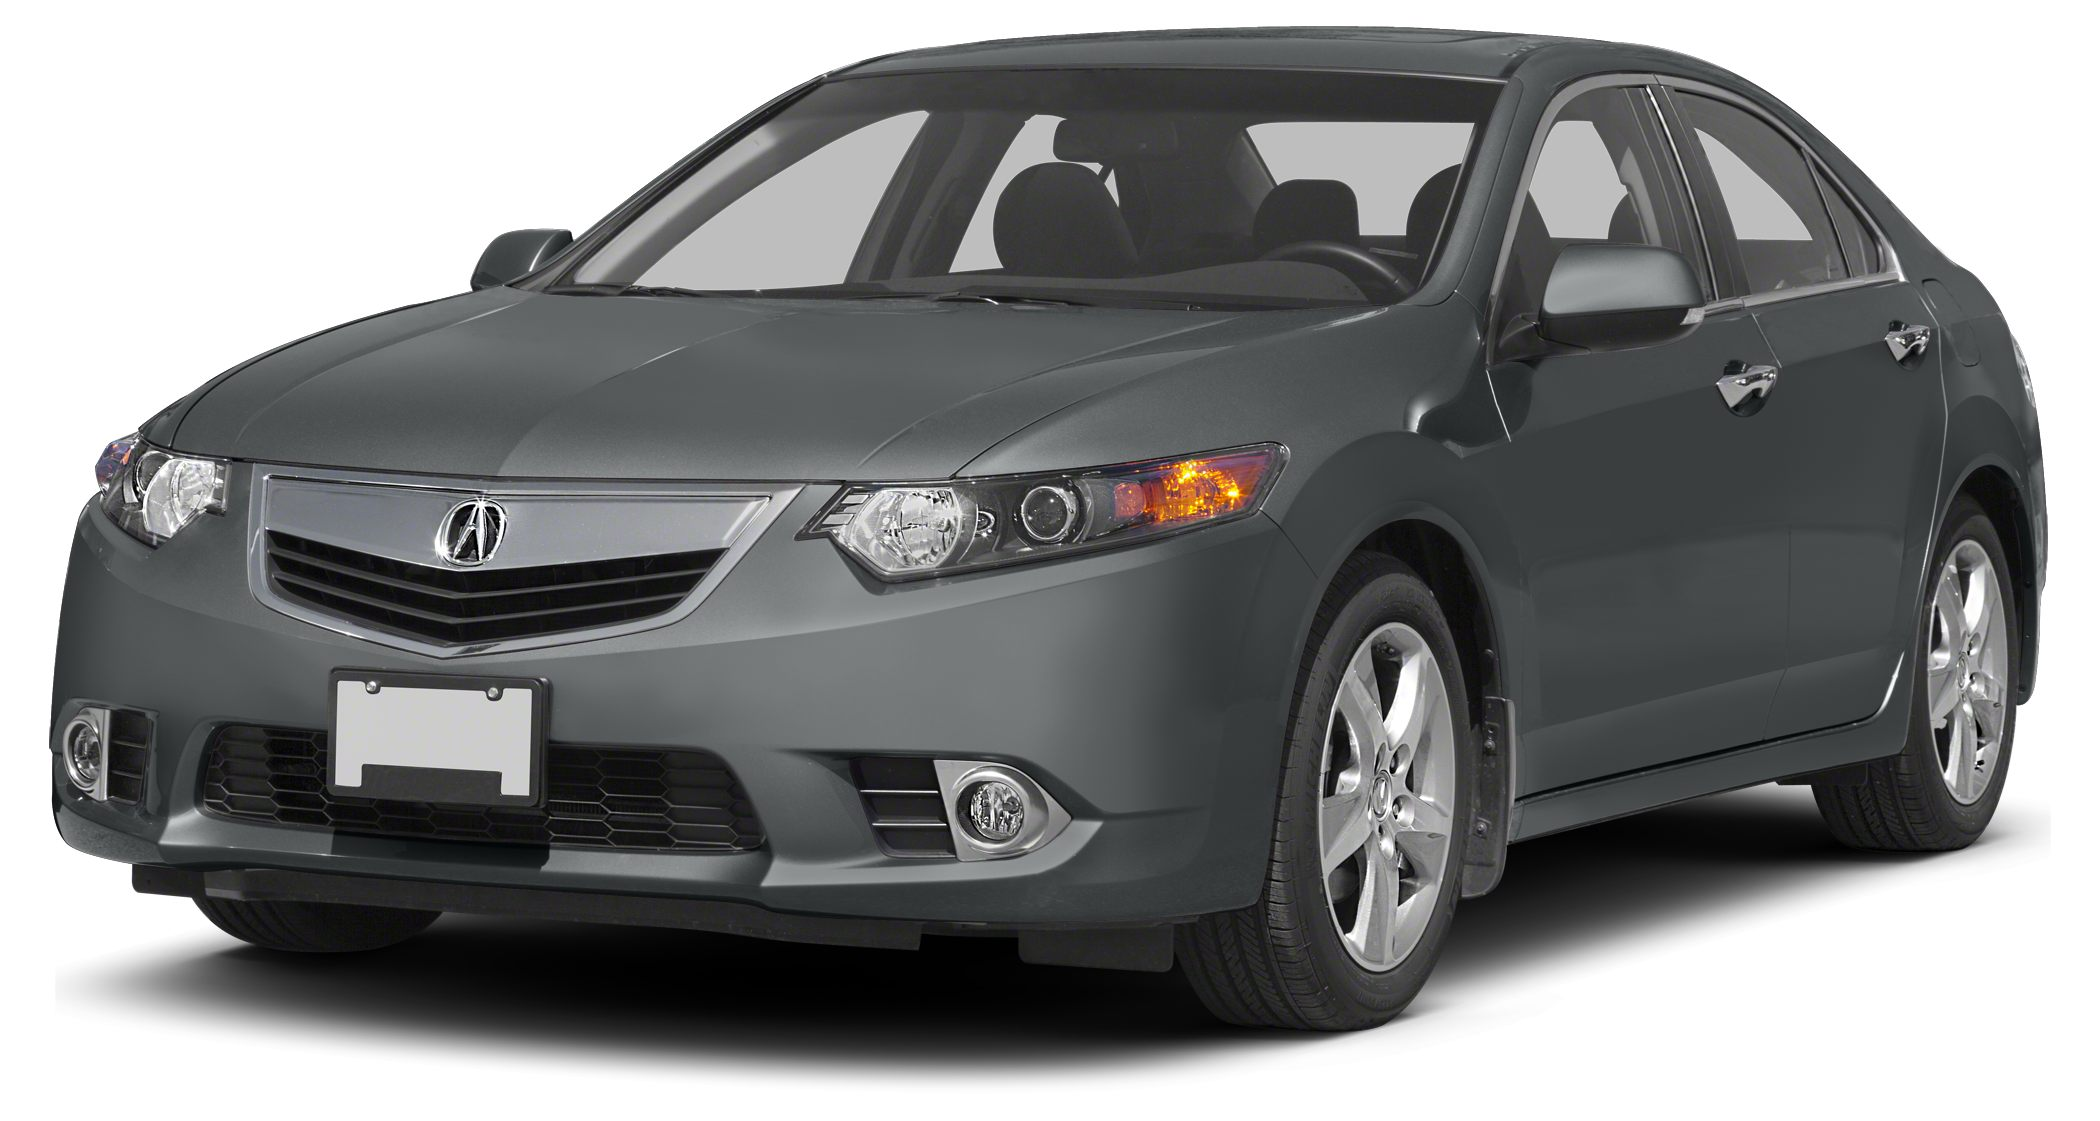 2013 Acura TSX 24 Technology Come see this 2013 Acura TSX Tech Pkg It has a Automatic transmissi